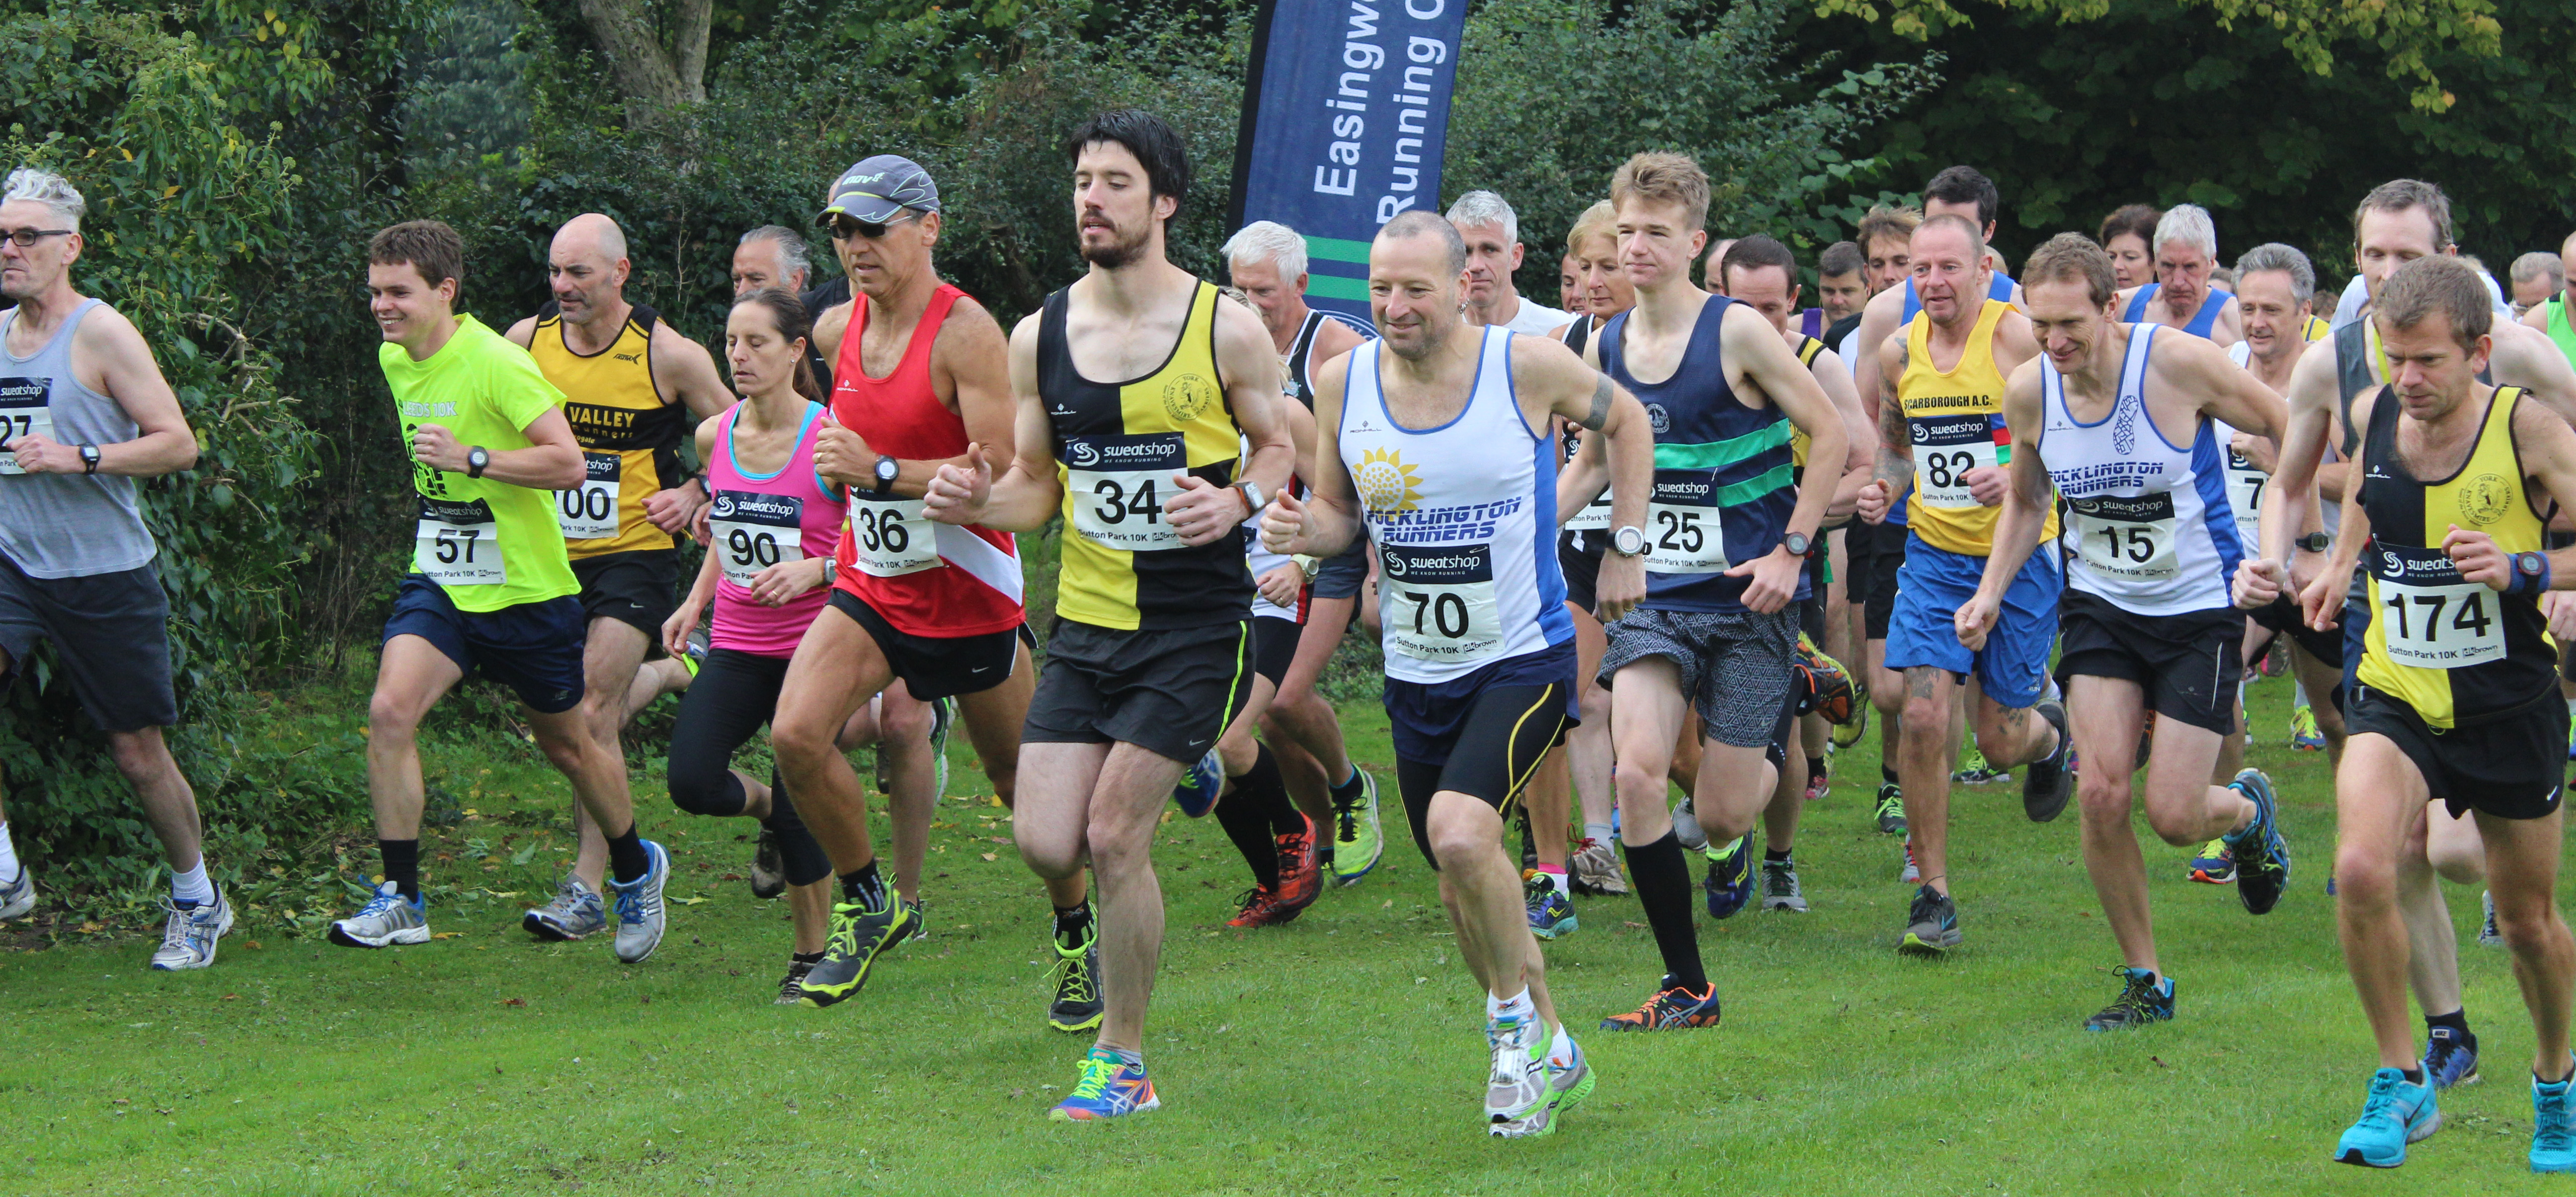 Sutton 10k runners at start of race